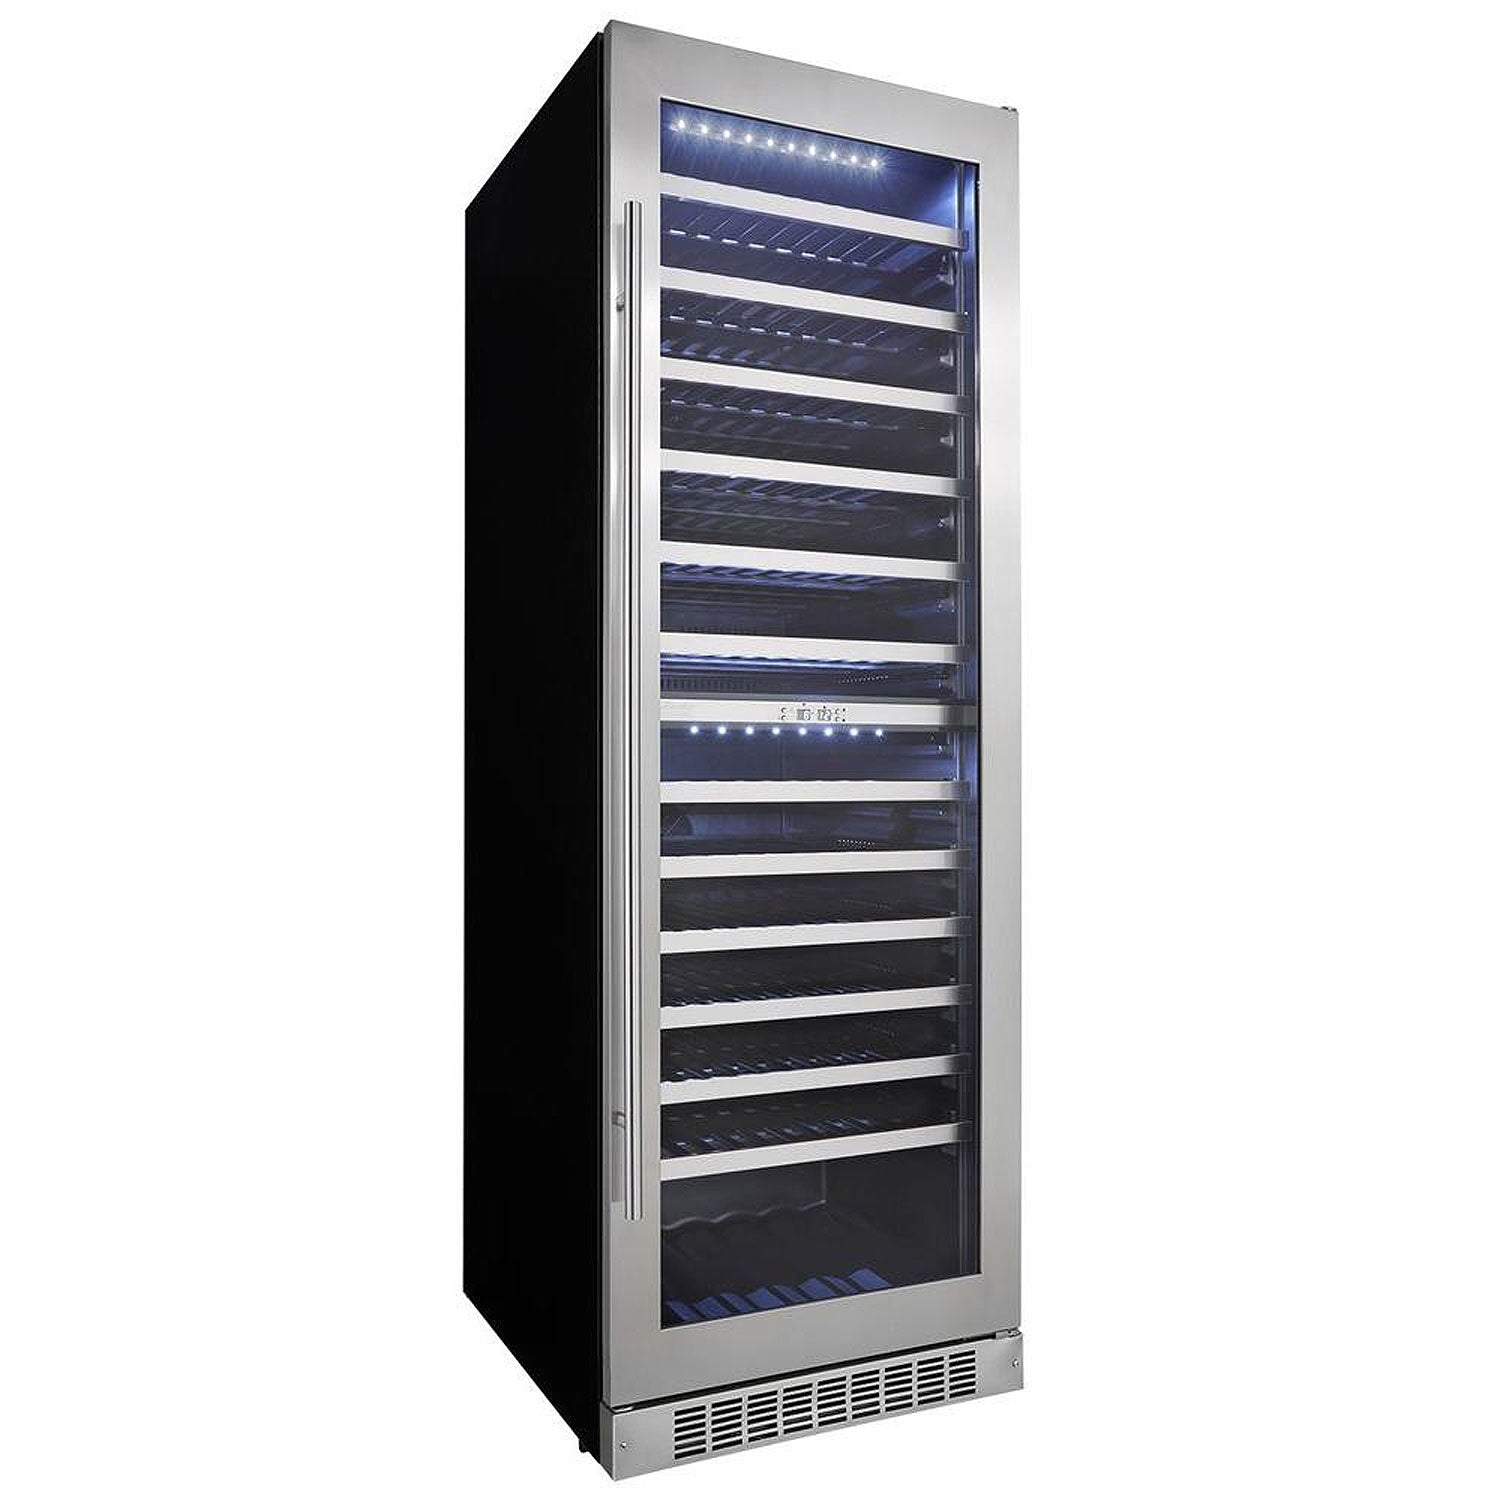 Danby Silhouette Professional Bordeaux 129-Bottle Built-in Wine Cellar - Swings and More